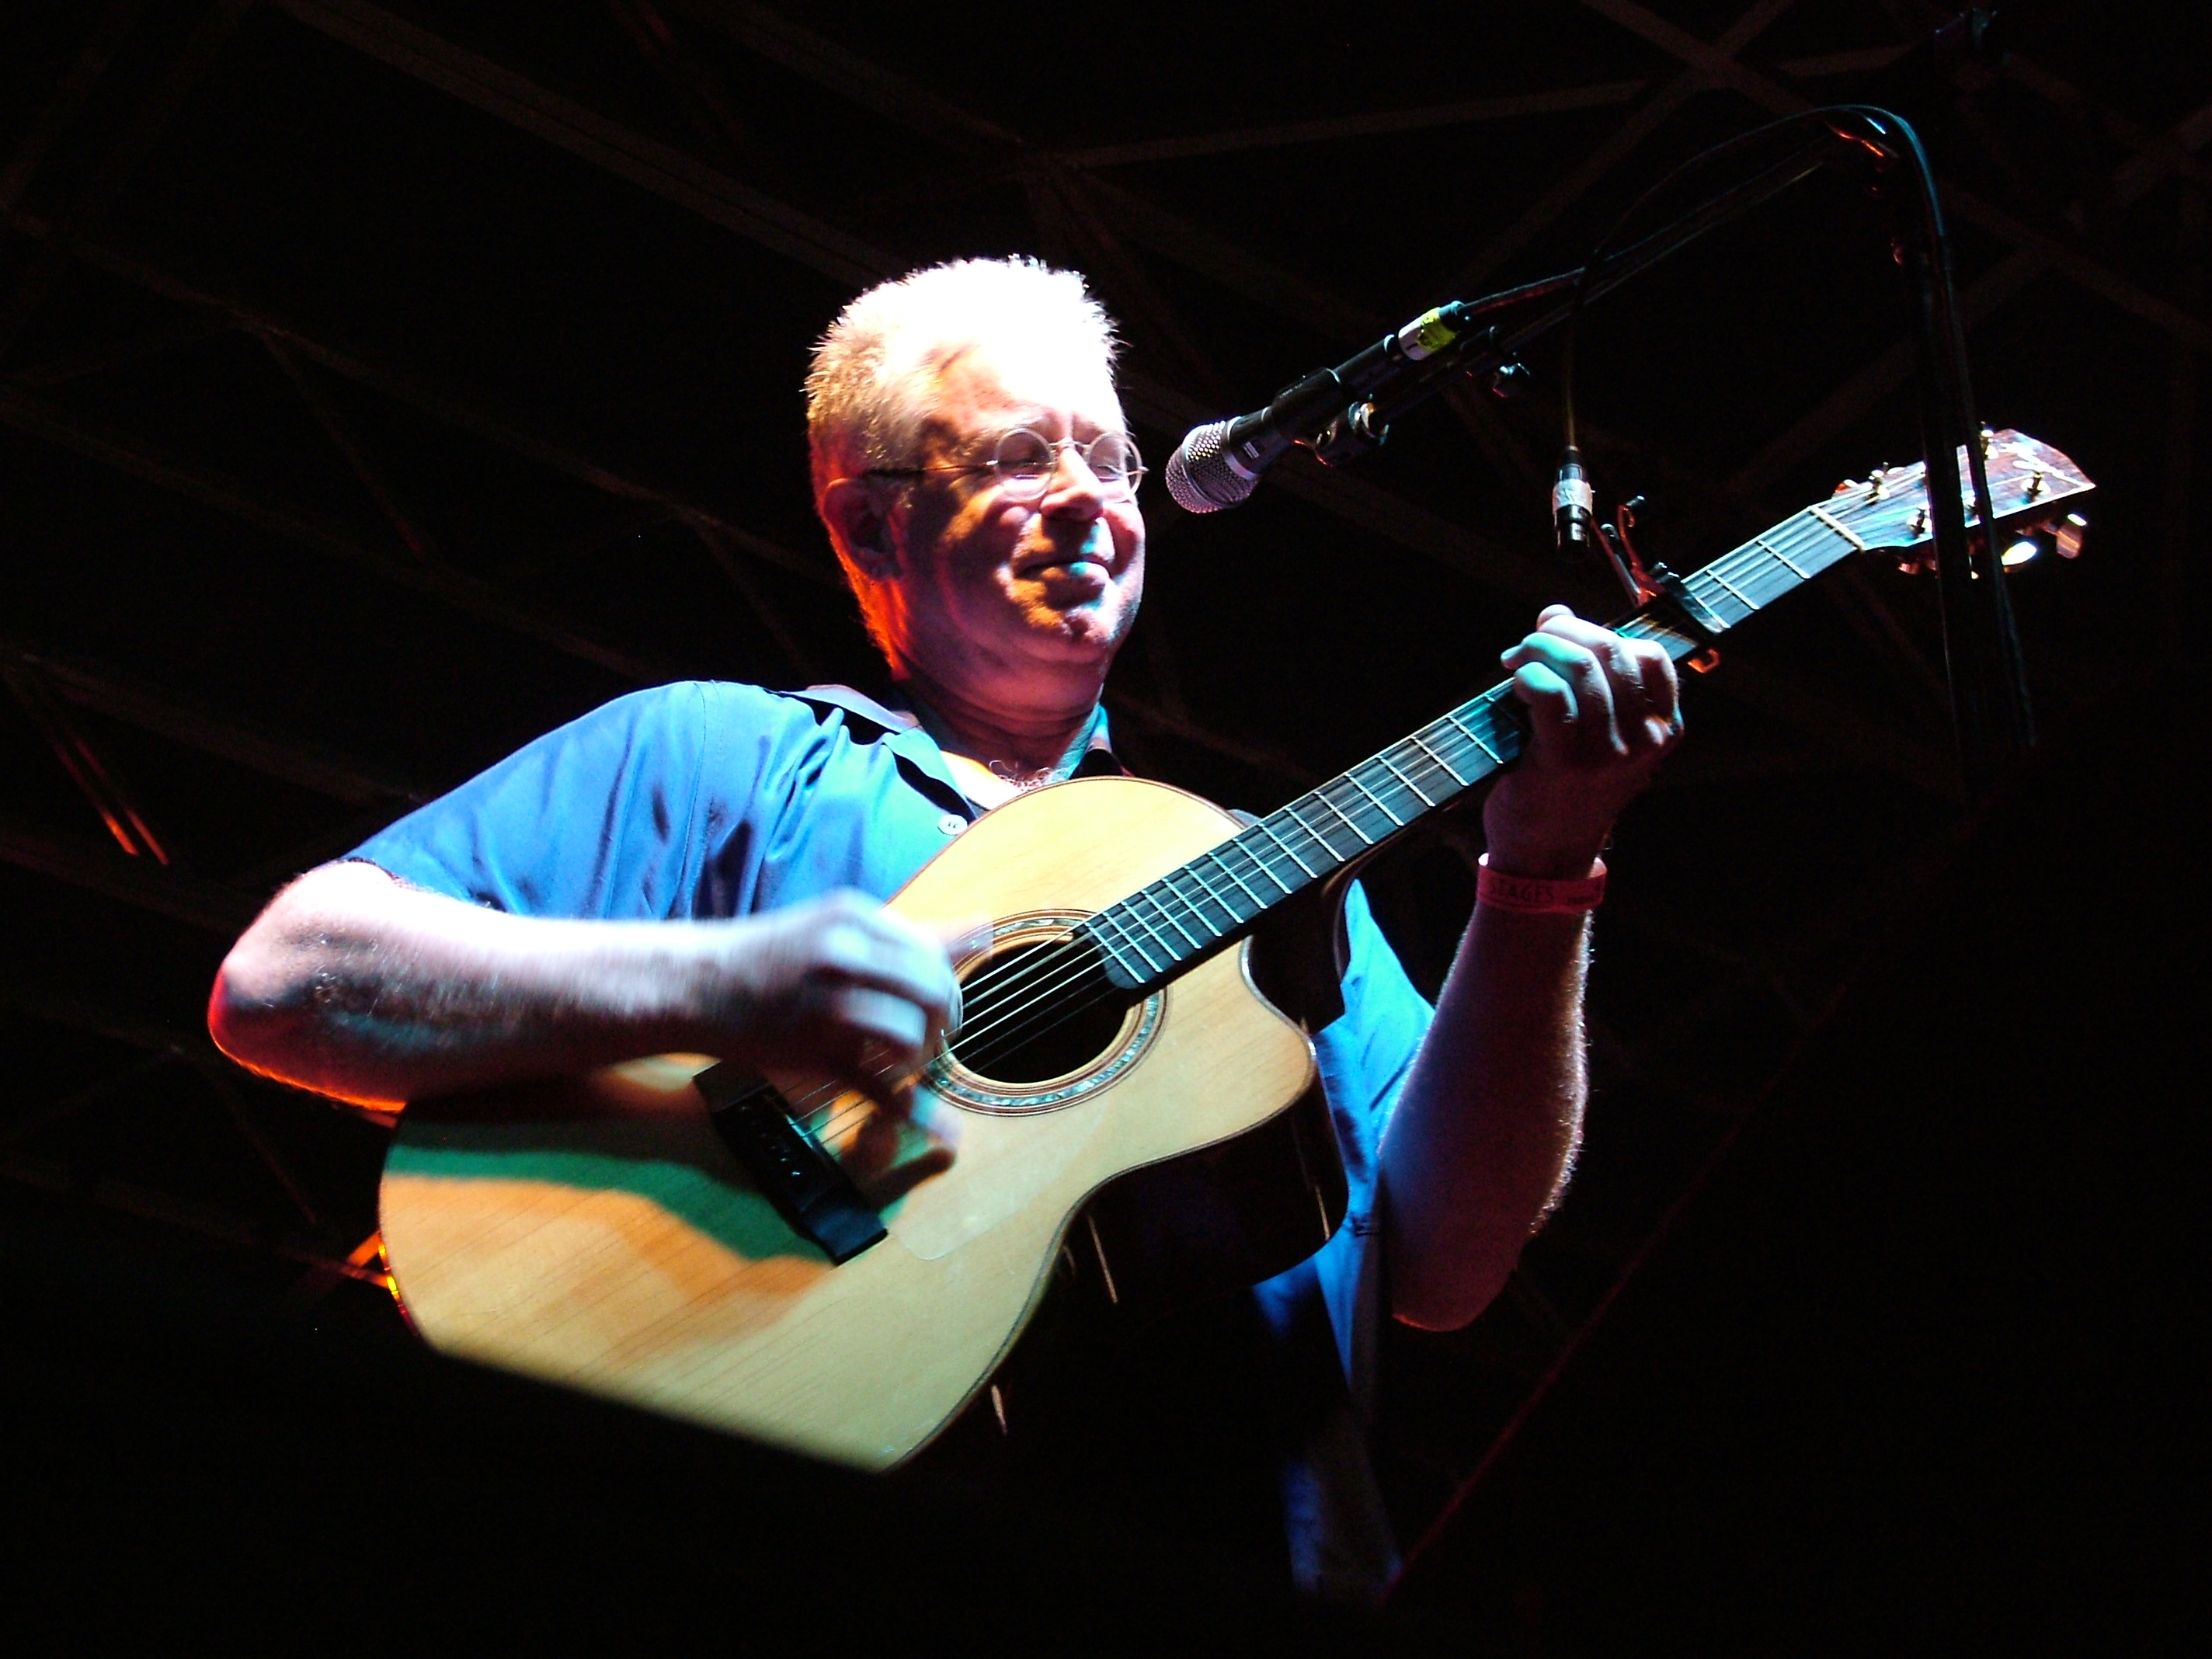 Cockburn performing in Birmingham, Alabama, in 2007